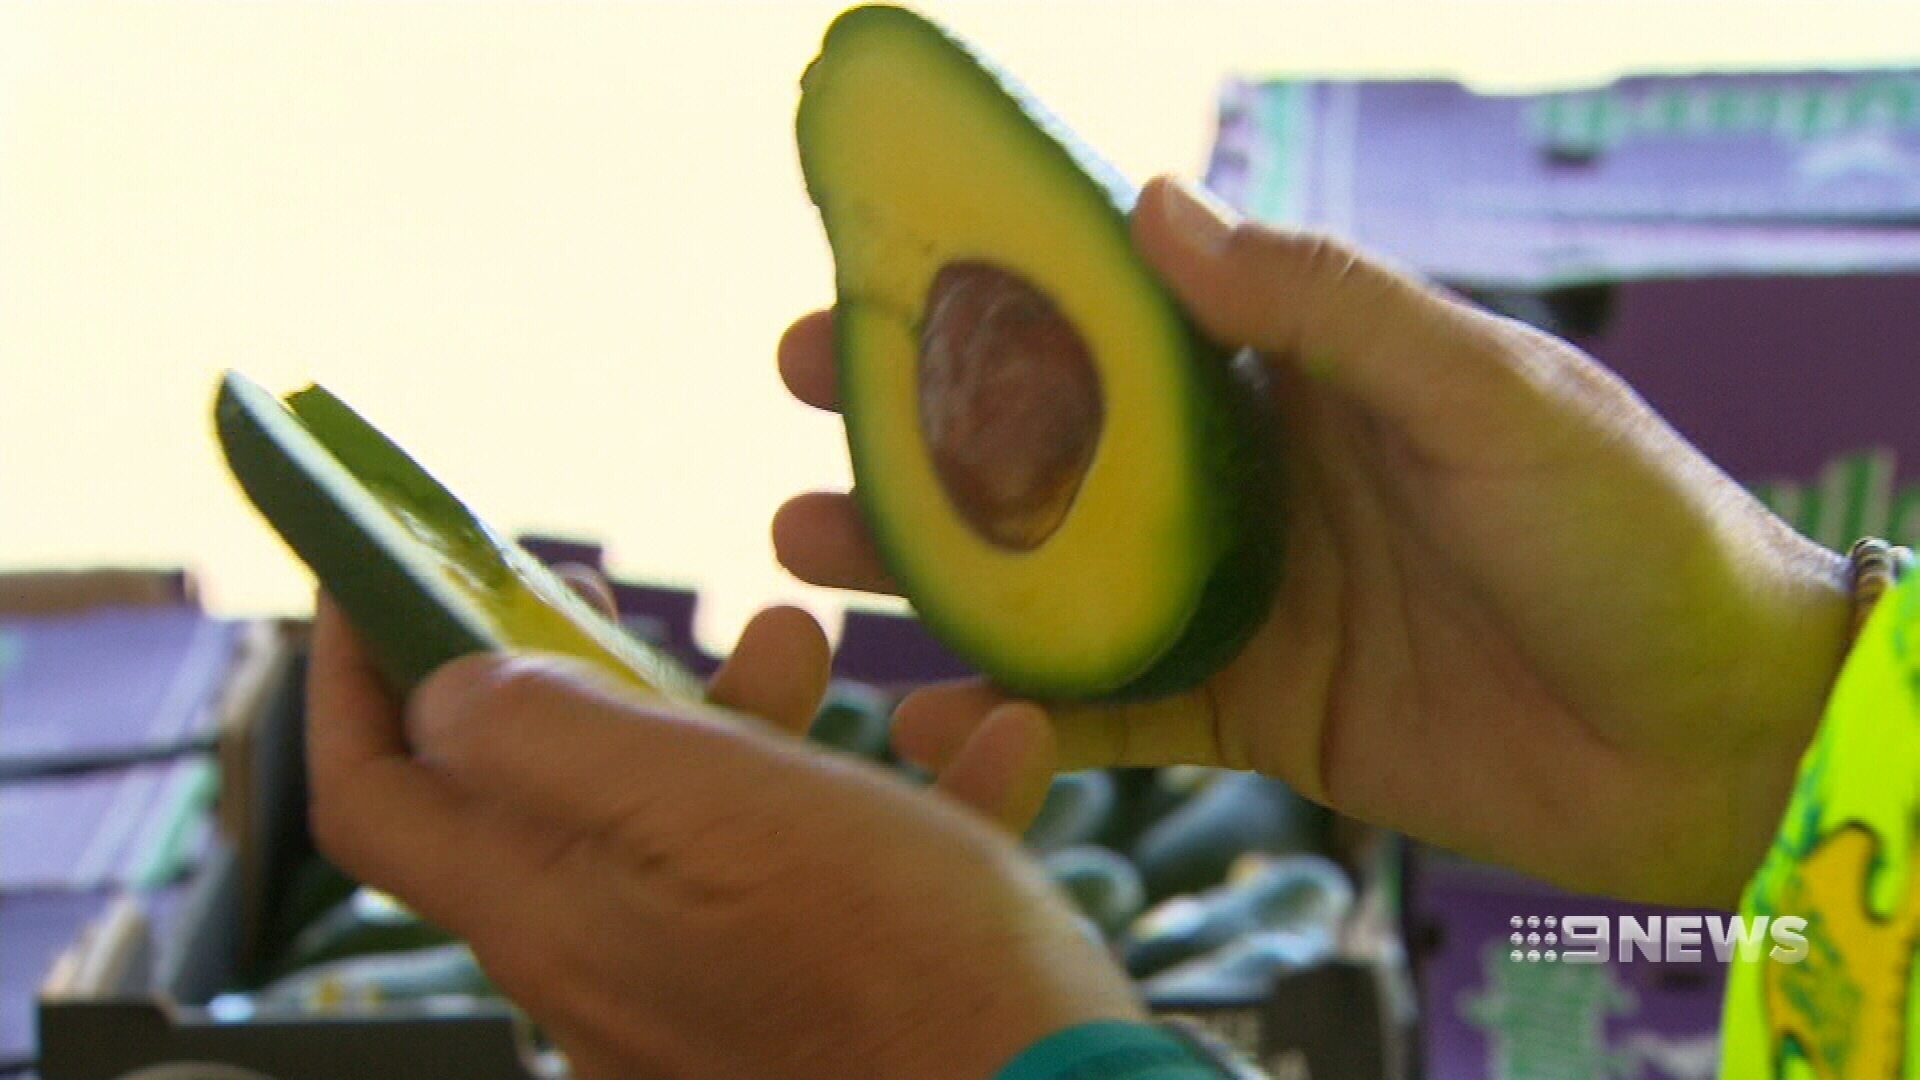 Avocado prices continue to skyrocket